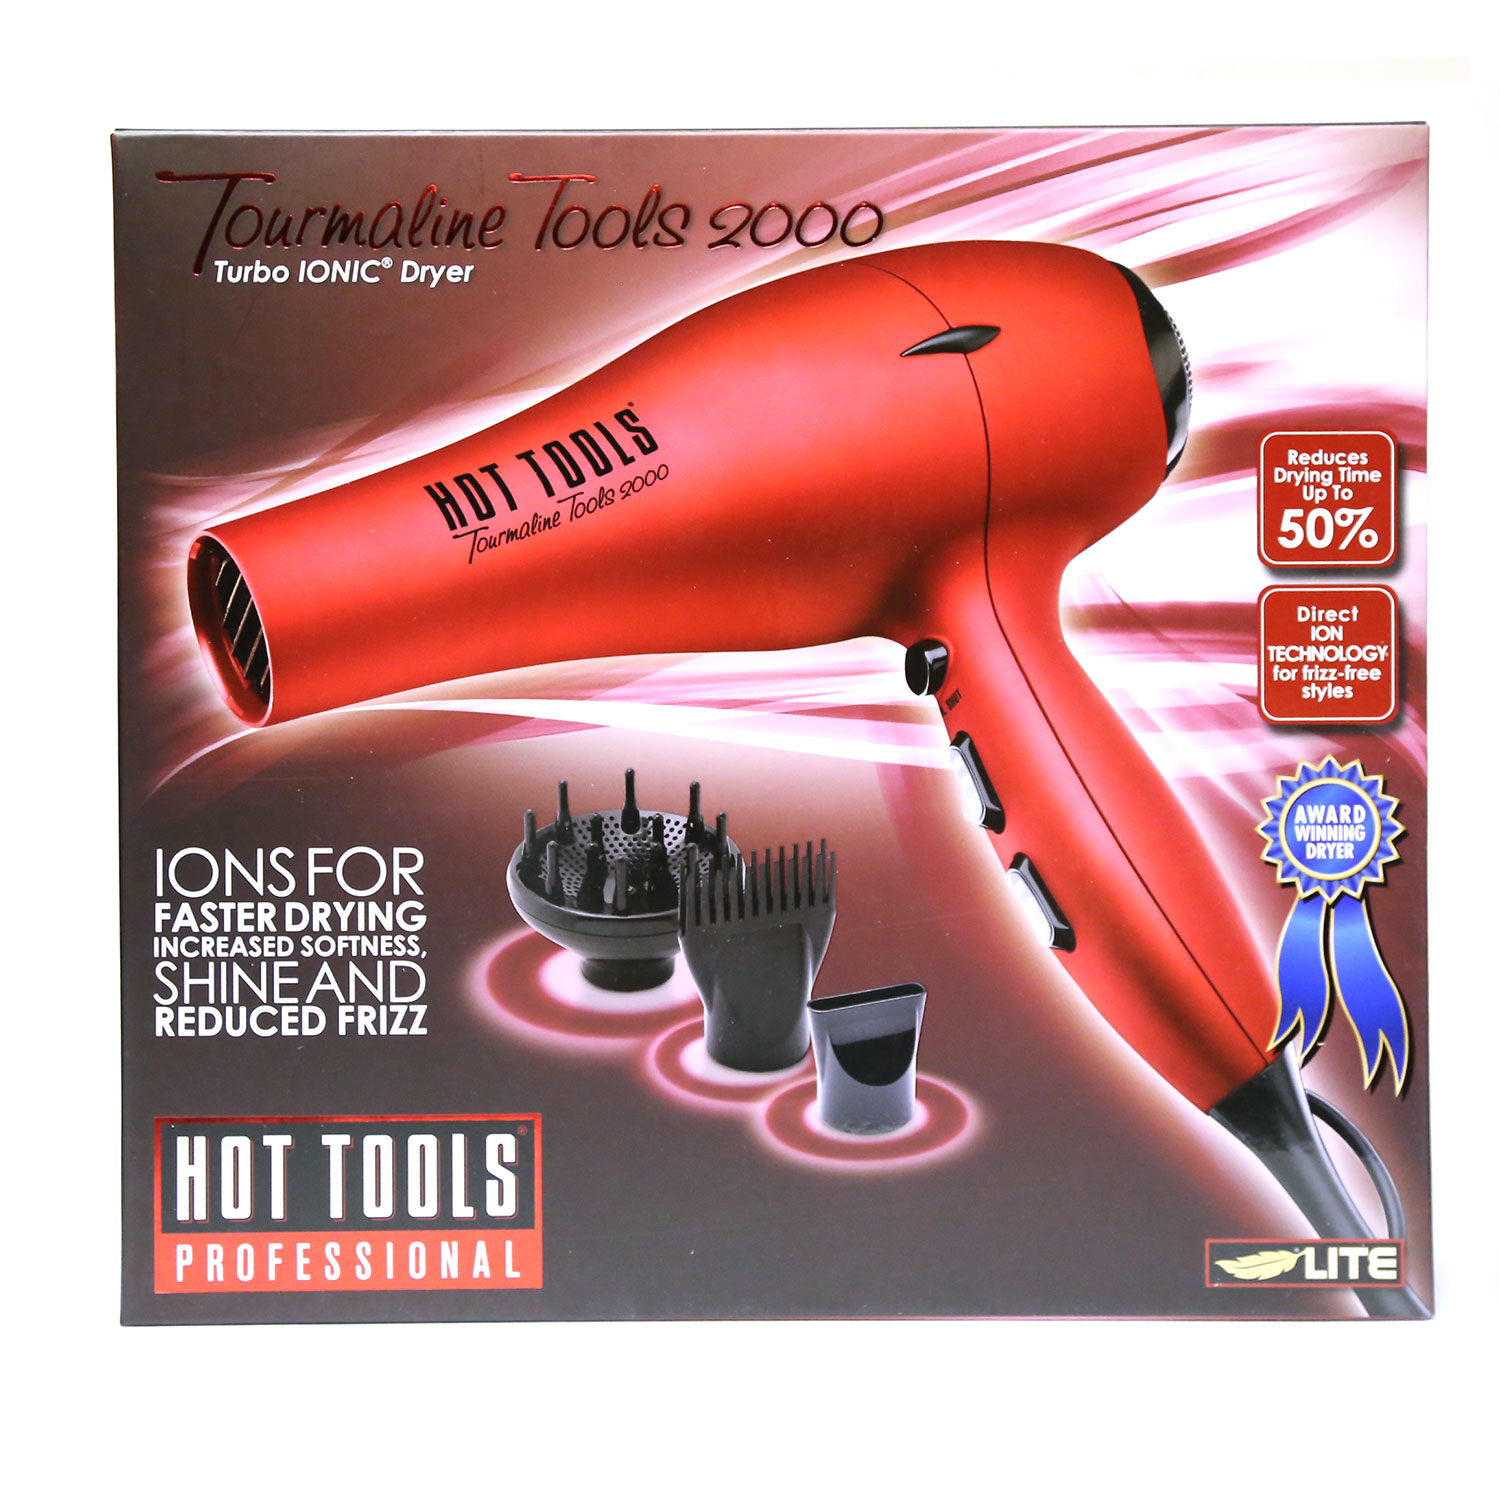 Image of Hot Tools Red Tourmaline Tools 2000 Turbo Ionic Hair Dryer #1043RD